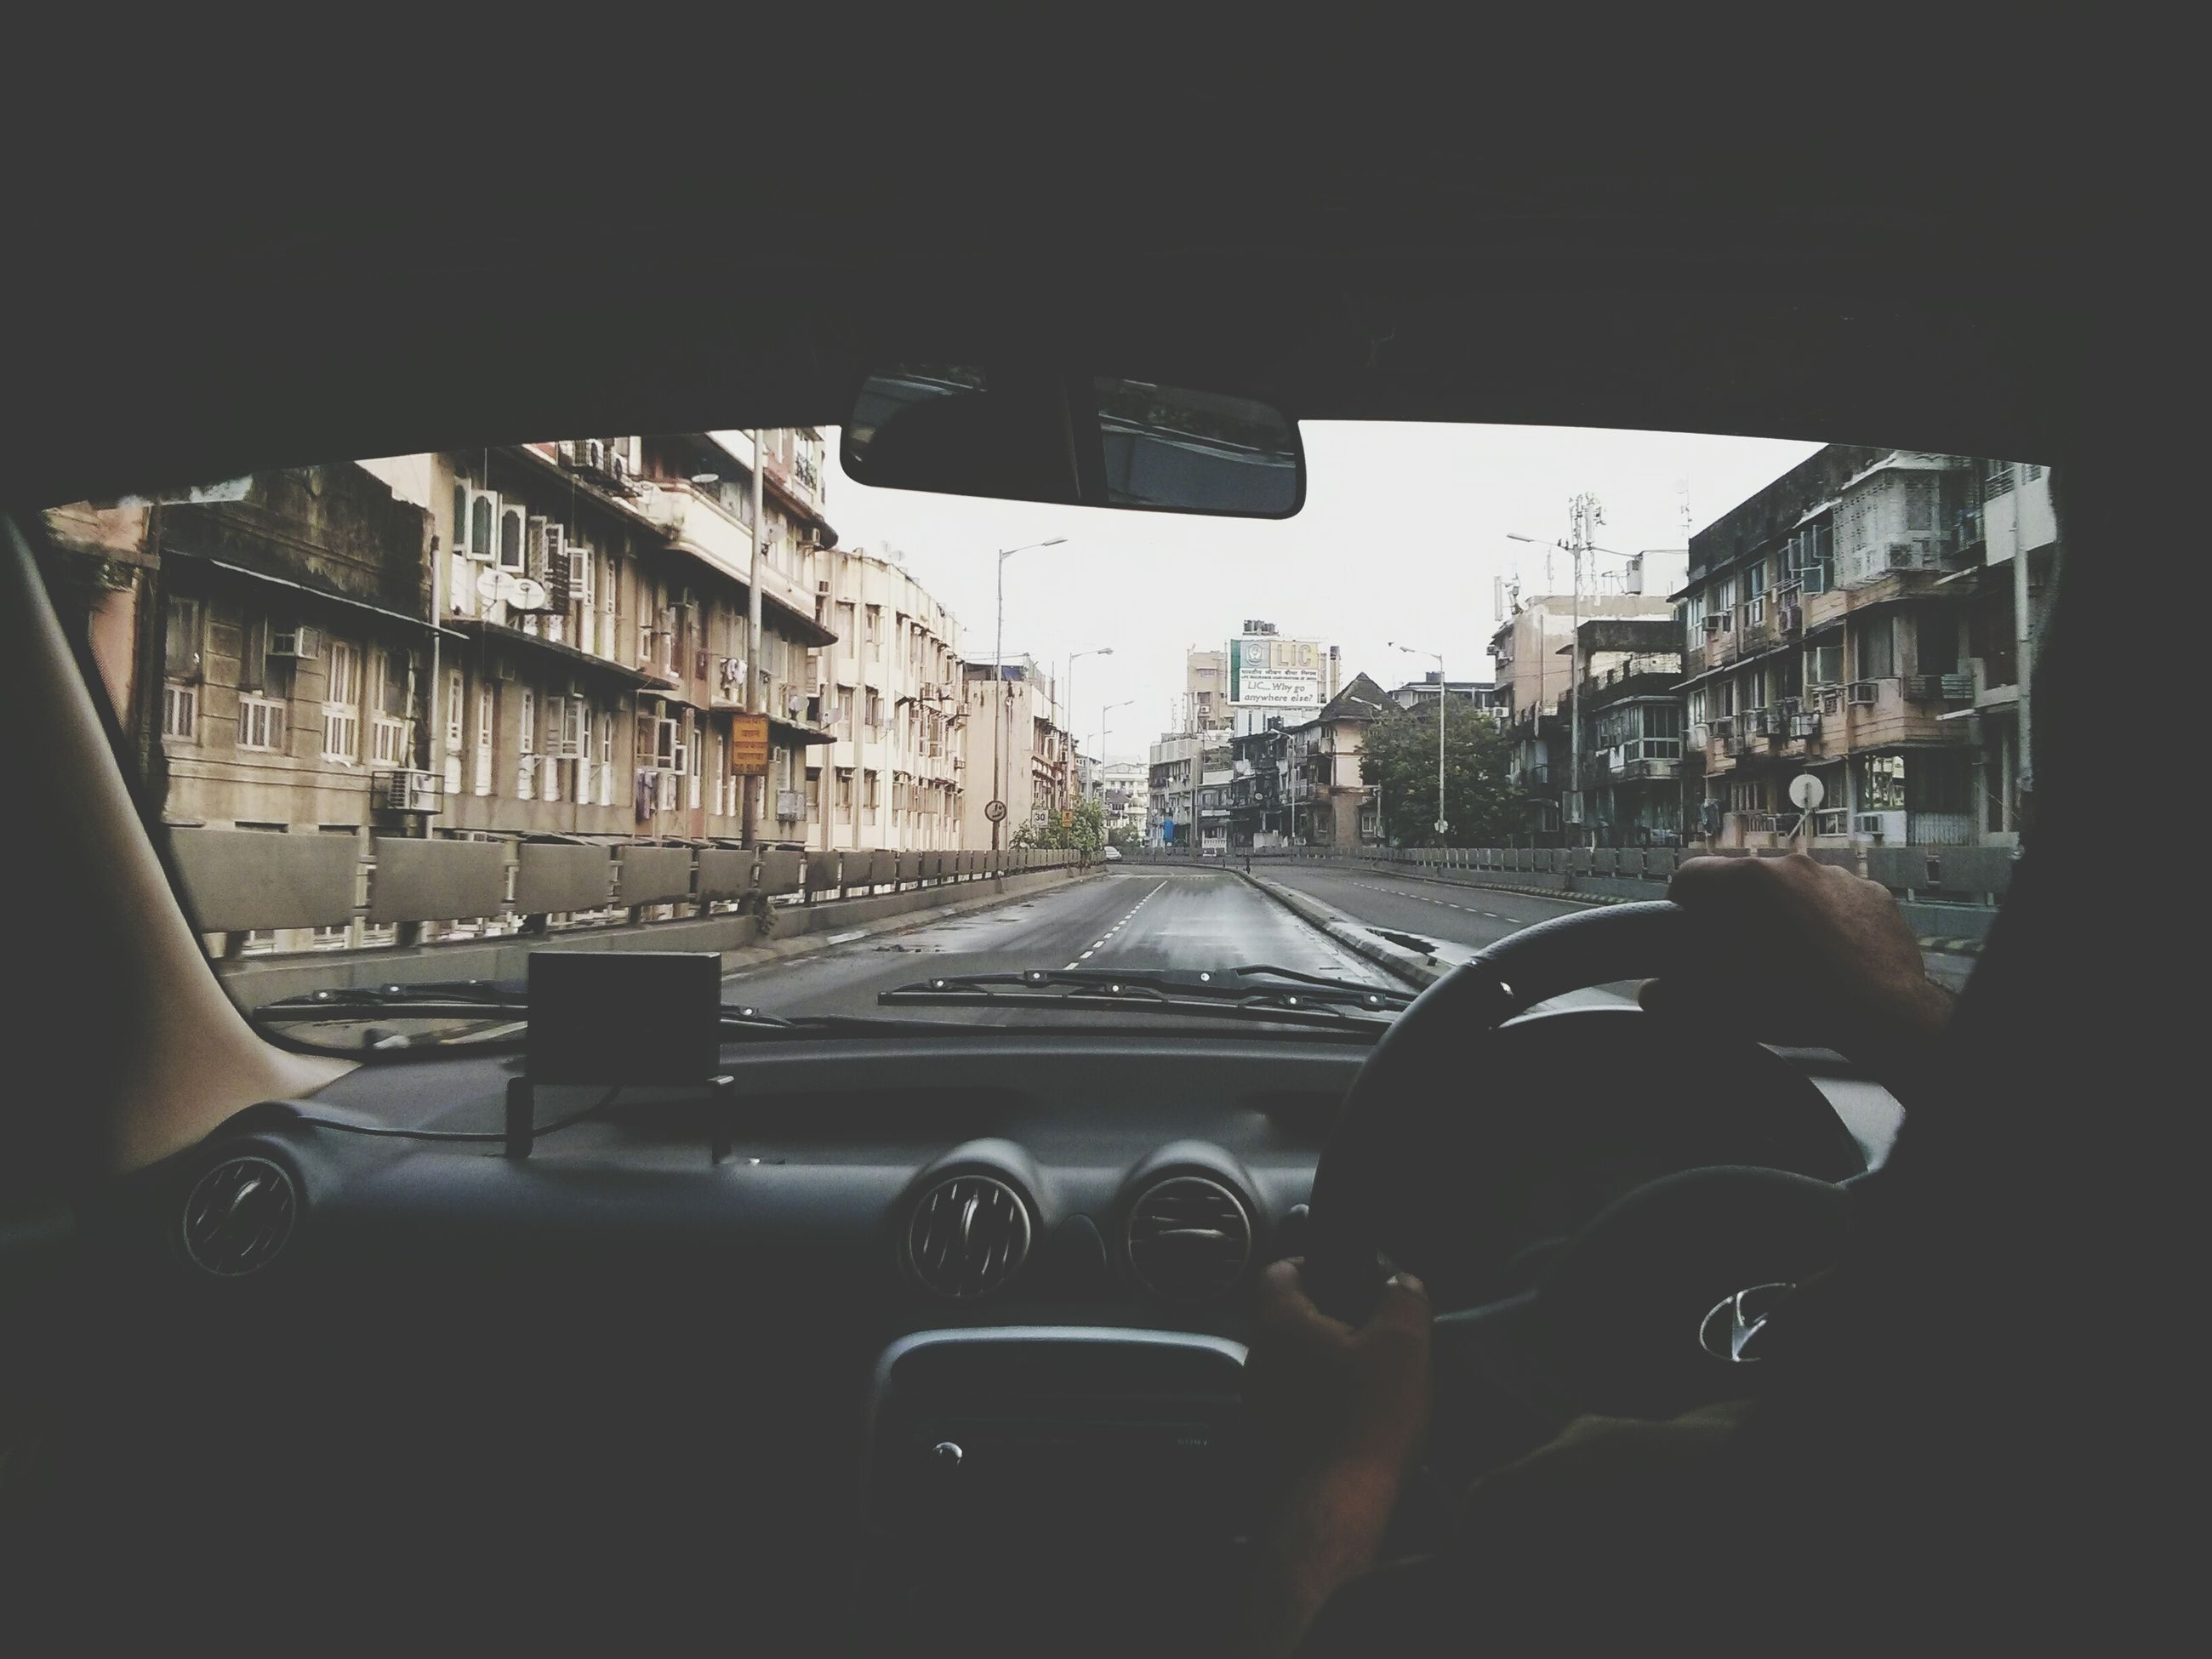 transportation, mode of transport, land vehicle, car, vehicle interior, travel, men, public transportation, architecture, lifestyles, city, built structure, journey, on the move, glass - material, street, city life, window